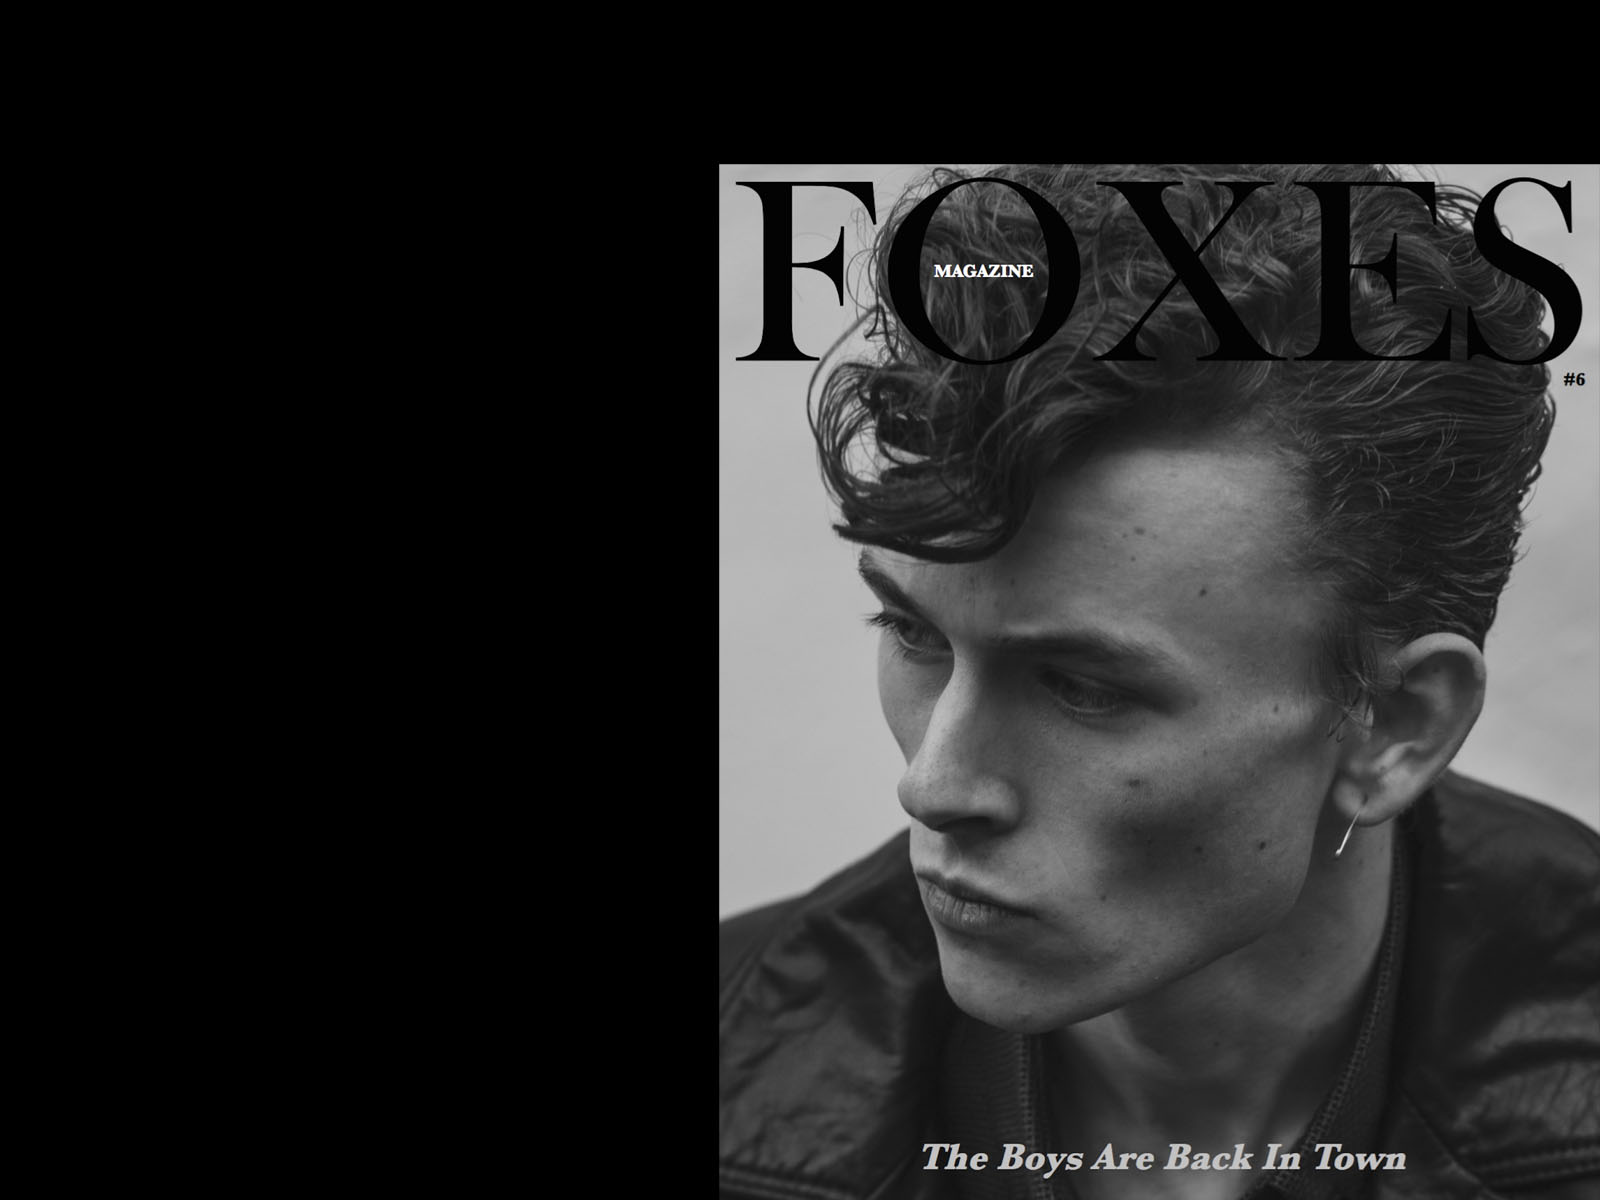 CHAPTER SS 16 featured in FOXES MAGAZINE